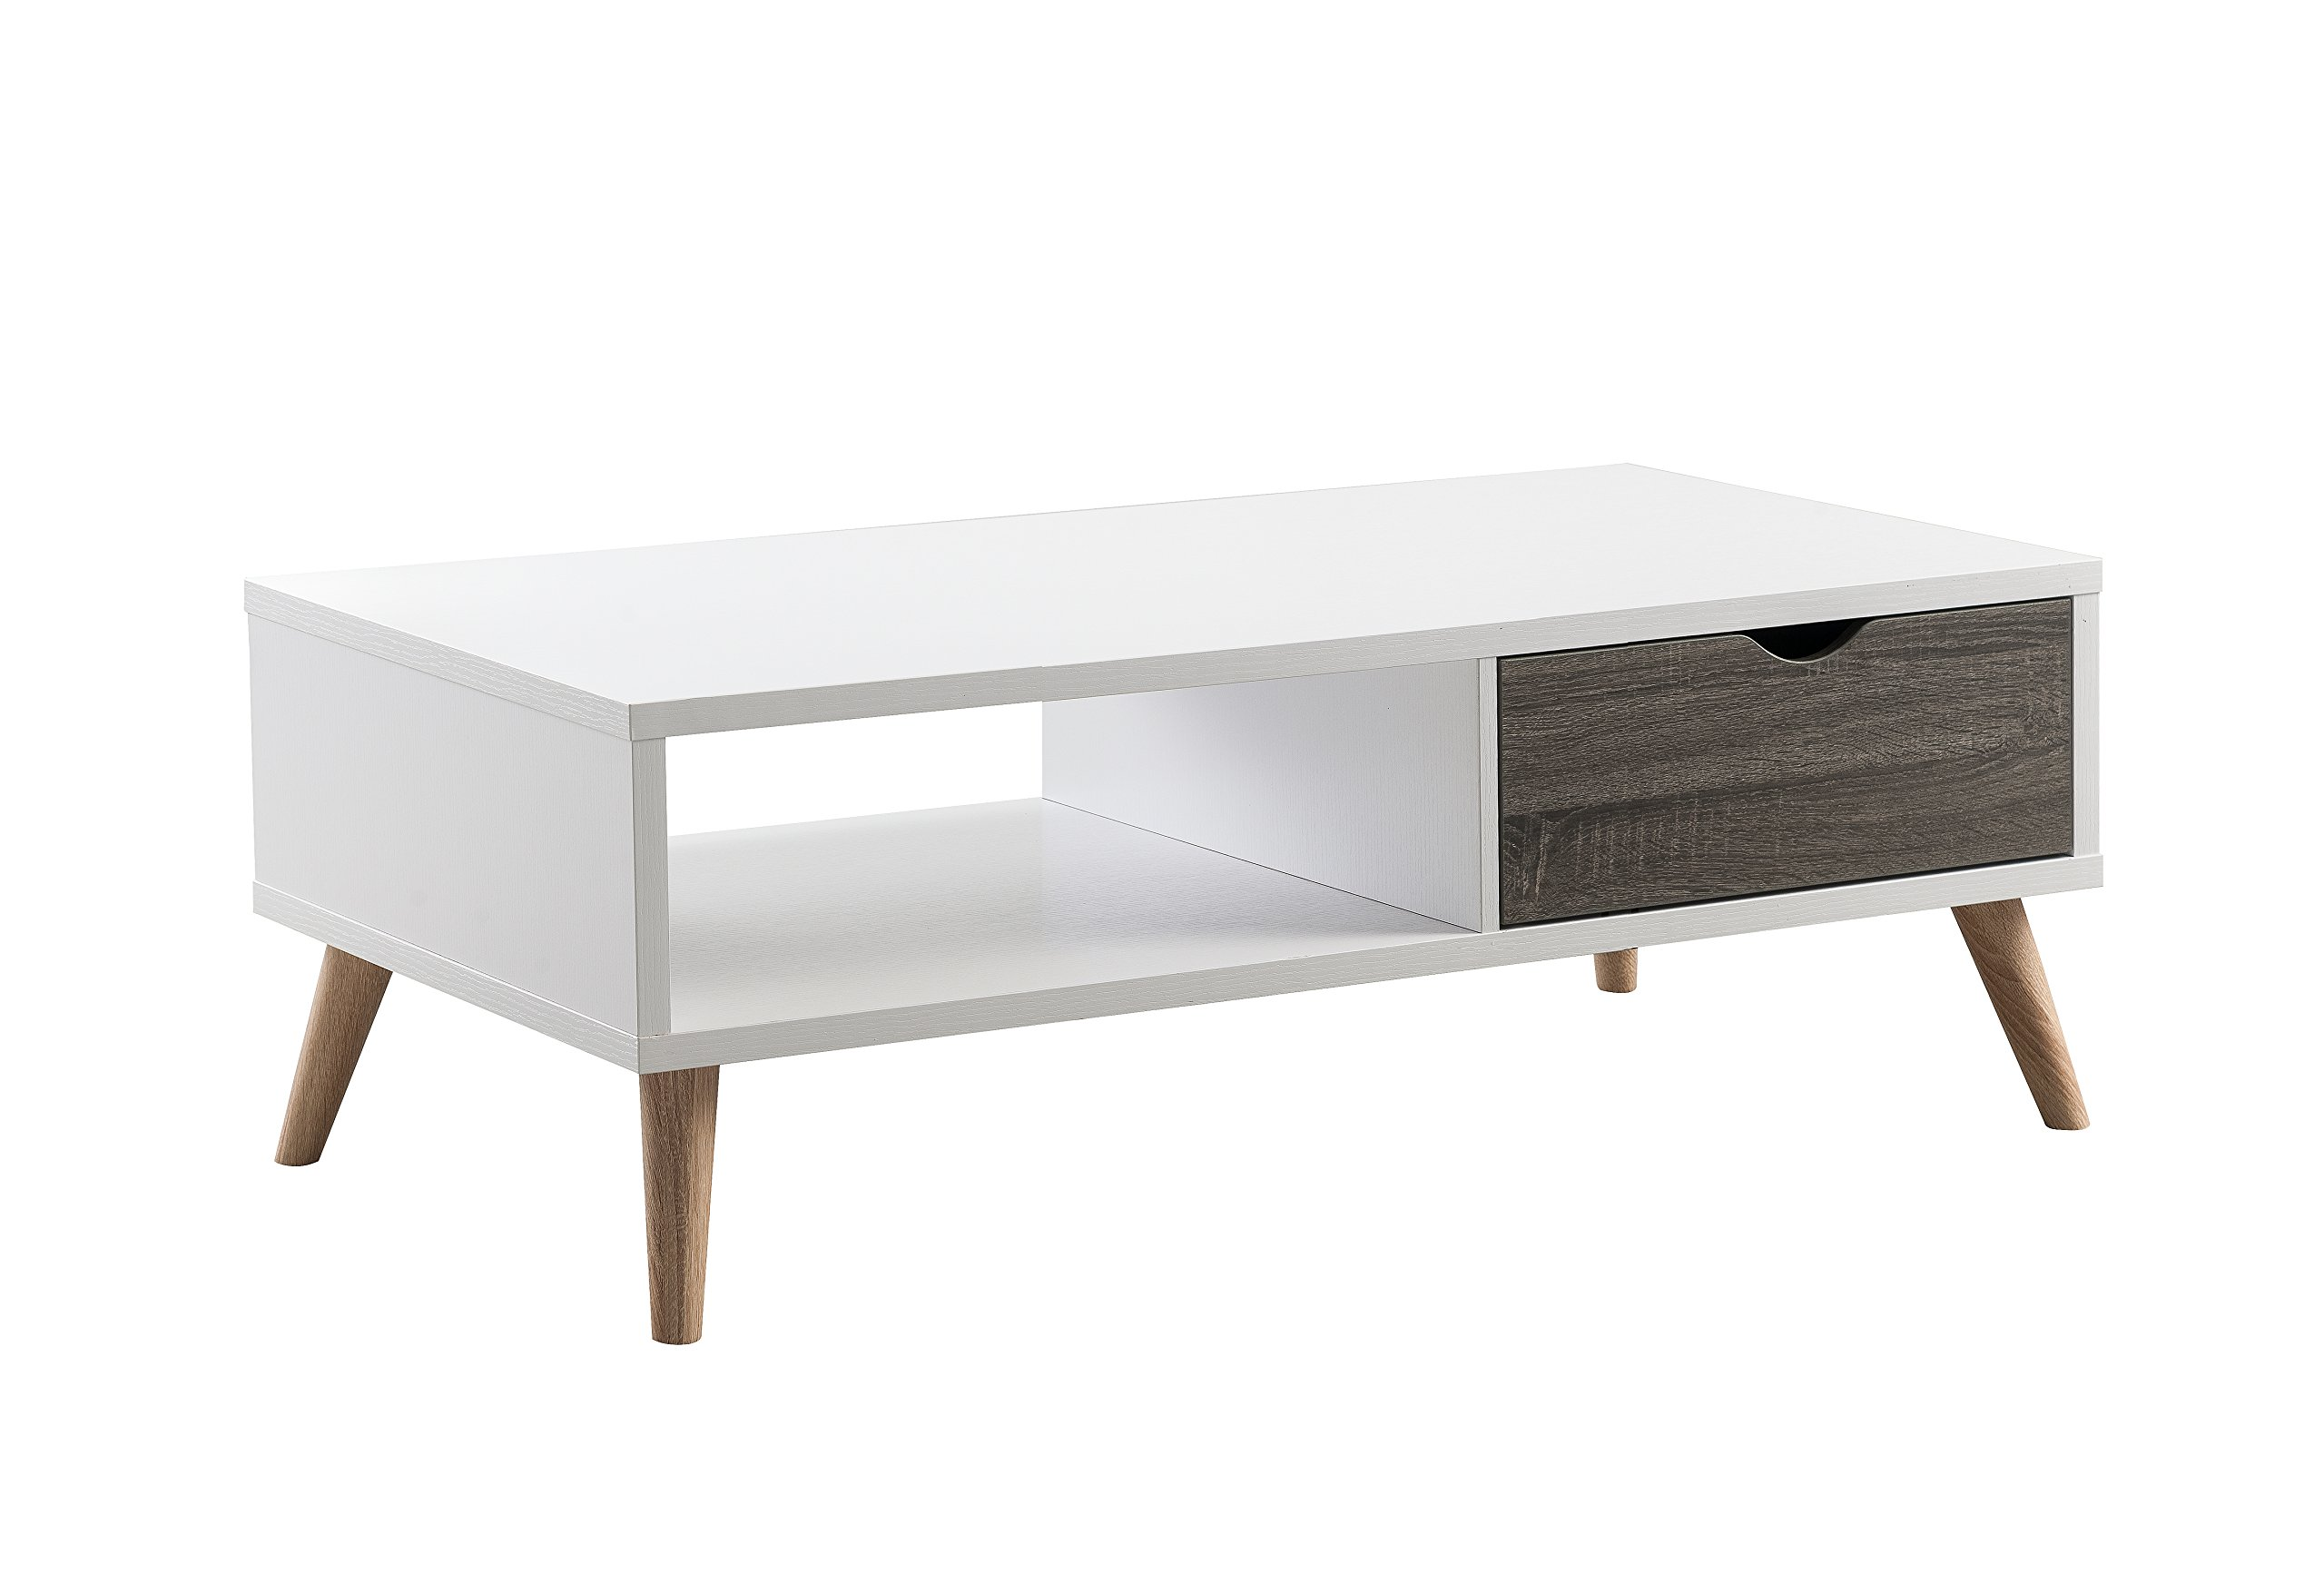 HOMES: Inside + Out Katalena Coffee Table, Gray/White by HOMES: Inside + Out